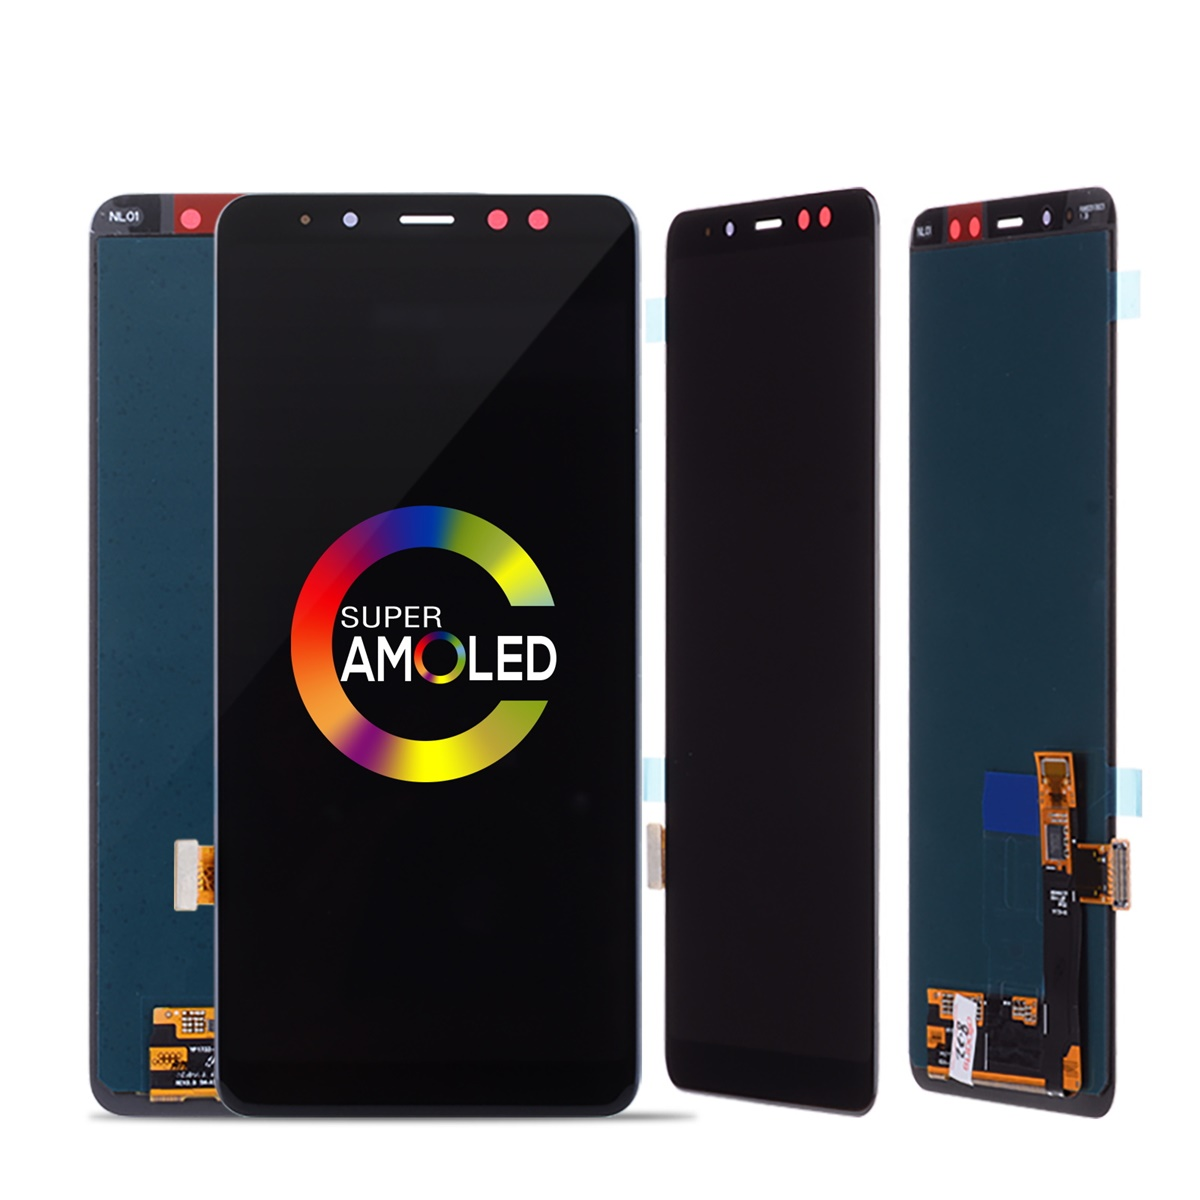 Oringinal 100% Super amoled LCD <font><b>Screen</b></font> for <font><b>SAMSUNG</b></font> Galaxy <font><b>A8</b></font> 2018 LCD <font><b>A8</b></font> 2018 LCD A530 <font><b>Display</b></font> Touch Digitizer Replacement image